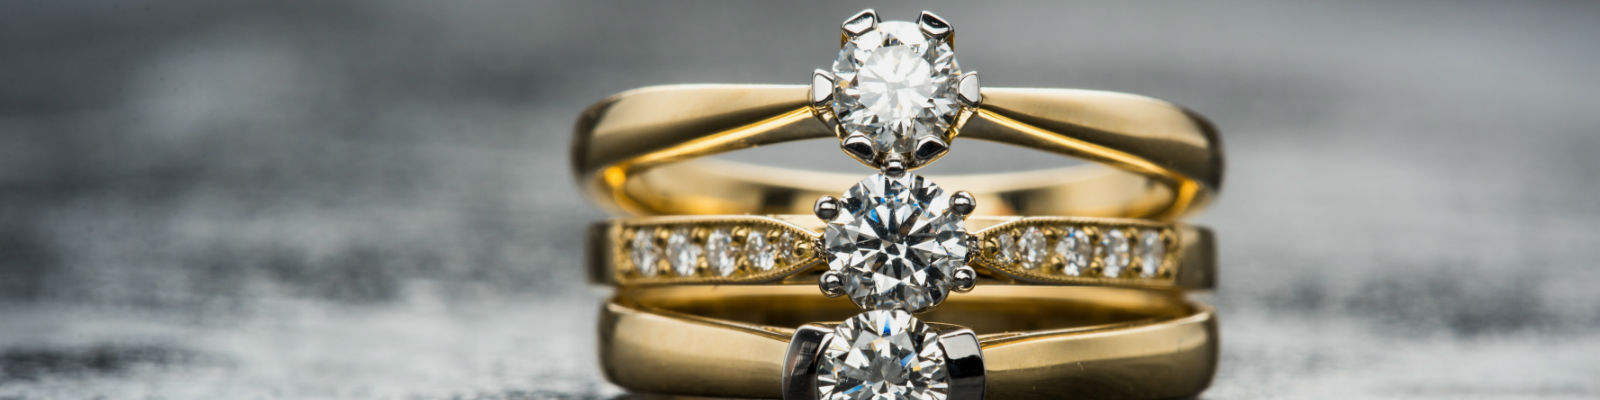 Sell Your Gold at Long Jewelers in Virginia Beach